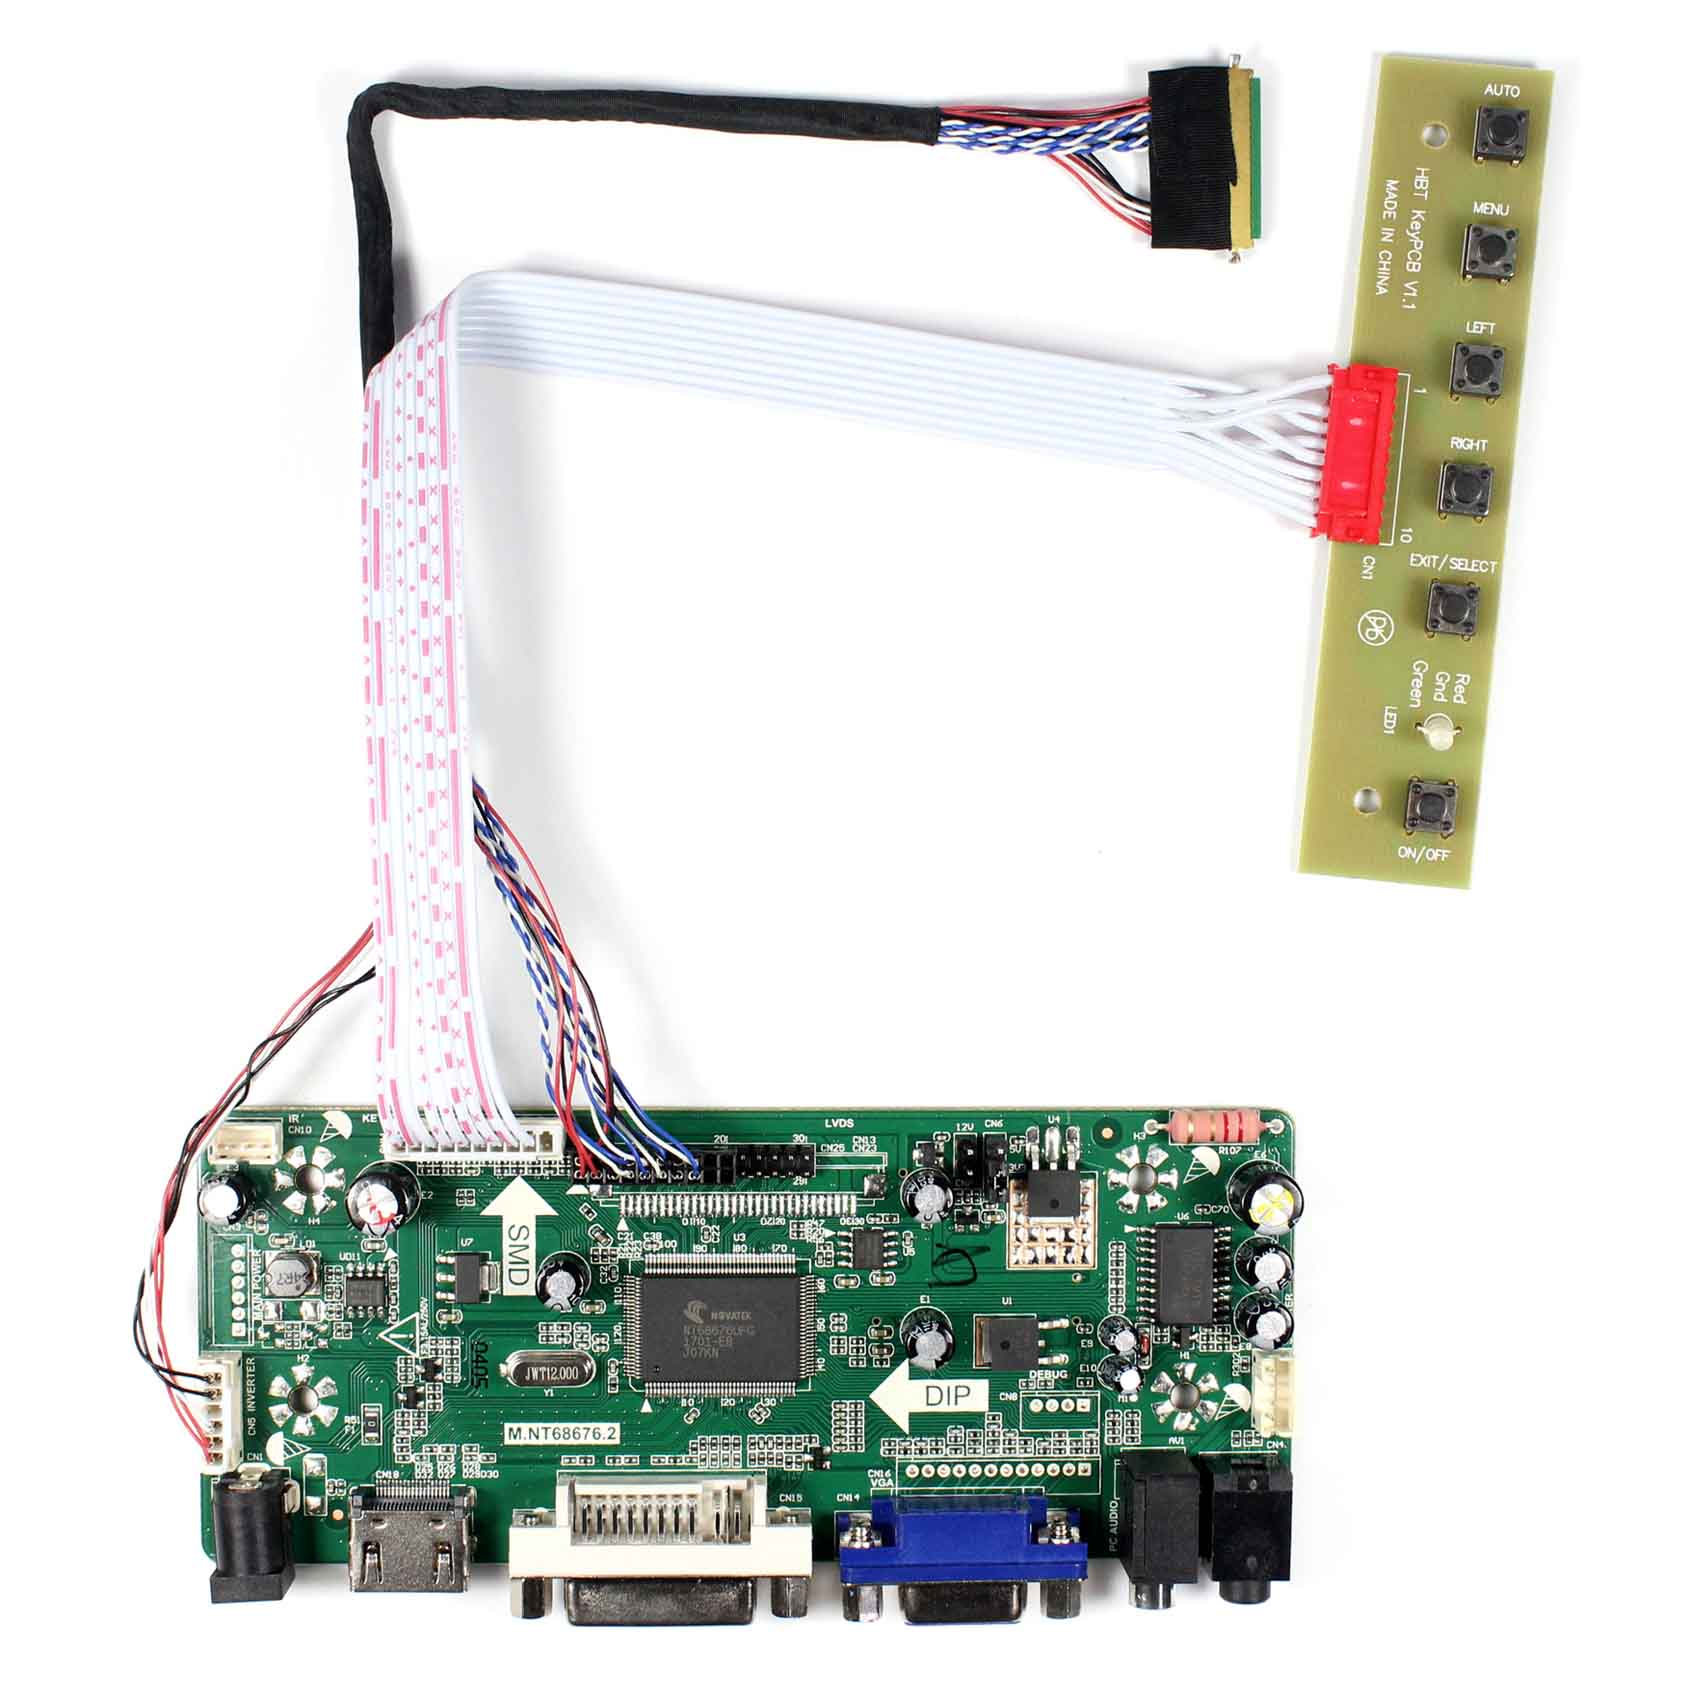 HDMI VGA DVI Audio LCD Controller Board For many types of LCD Panel and DIY LCD Monitor(Must to Provide model type when order )